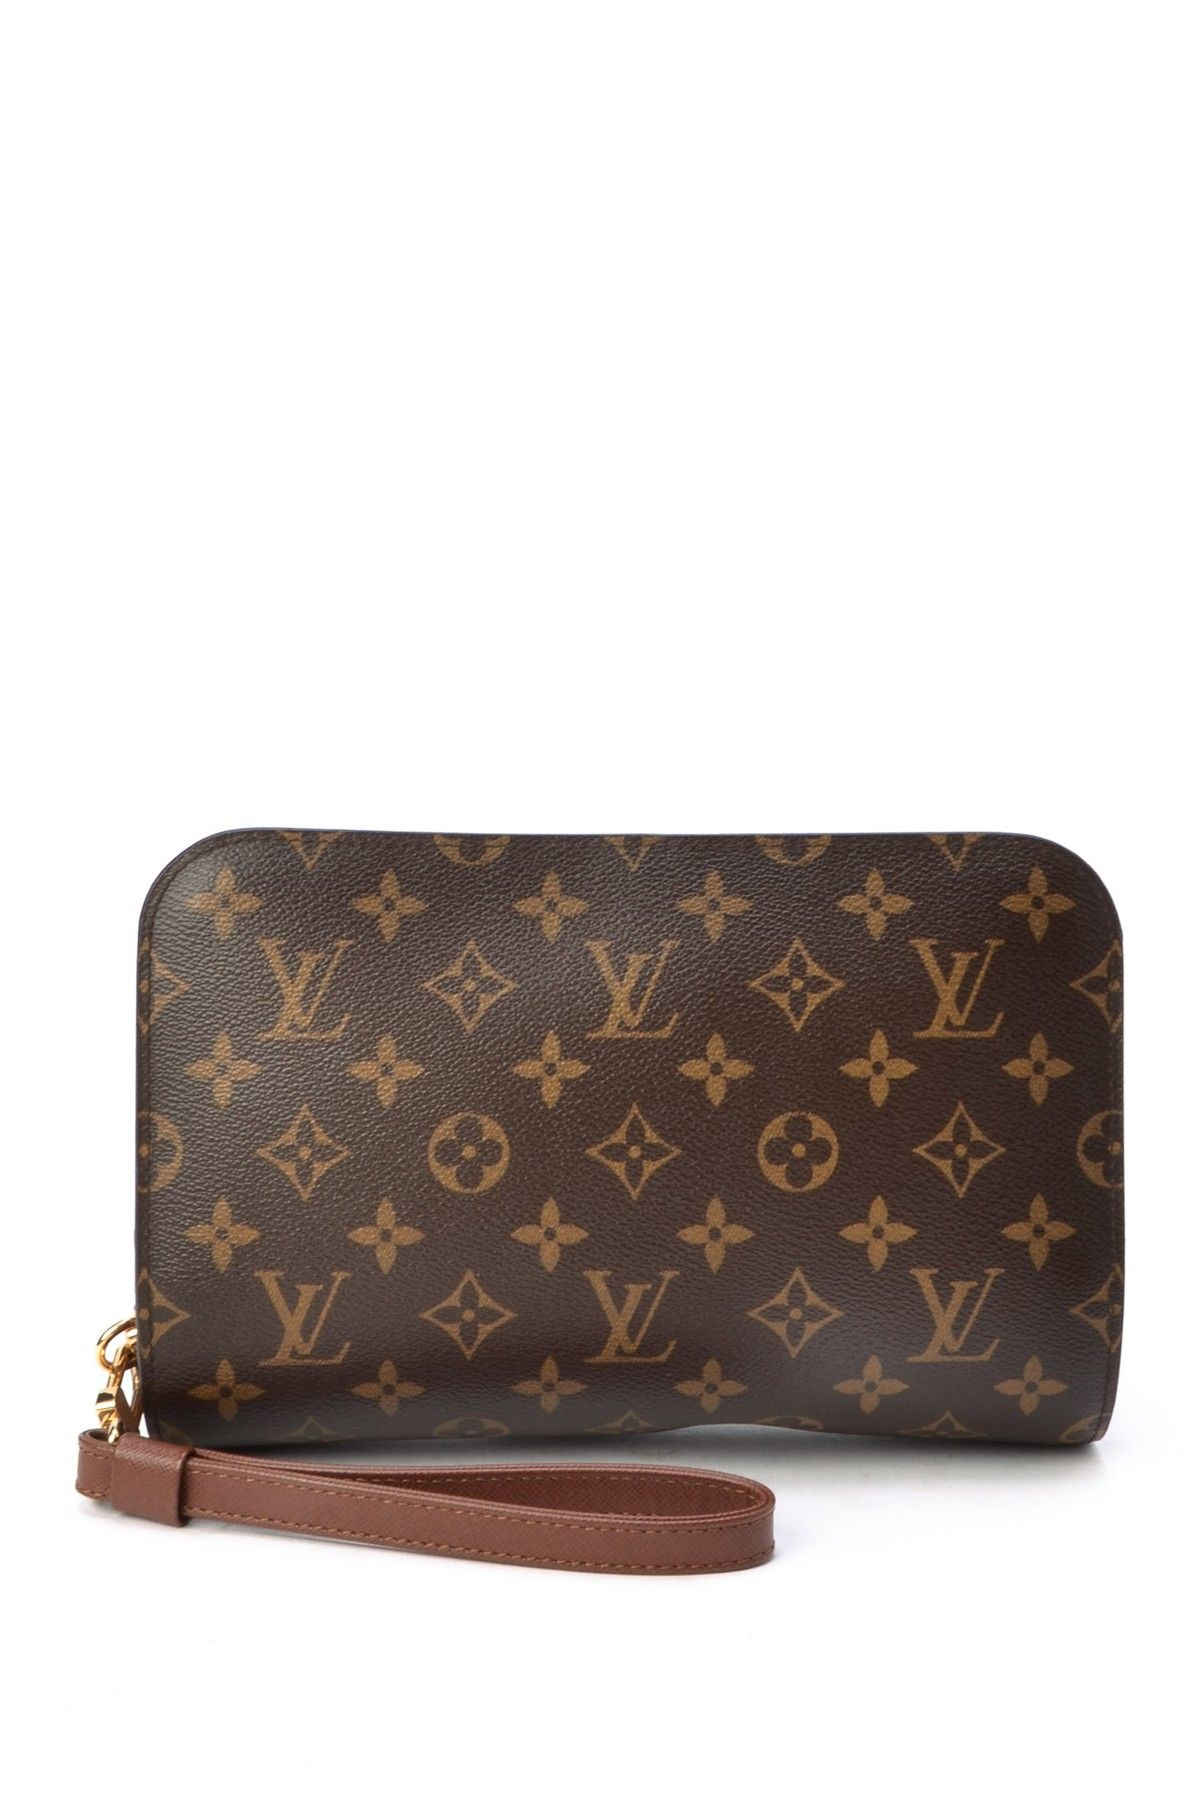 0bb3116ef3b0 Vintage Louis Vuitton Leather Orsay Wristlet on HauteLook